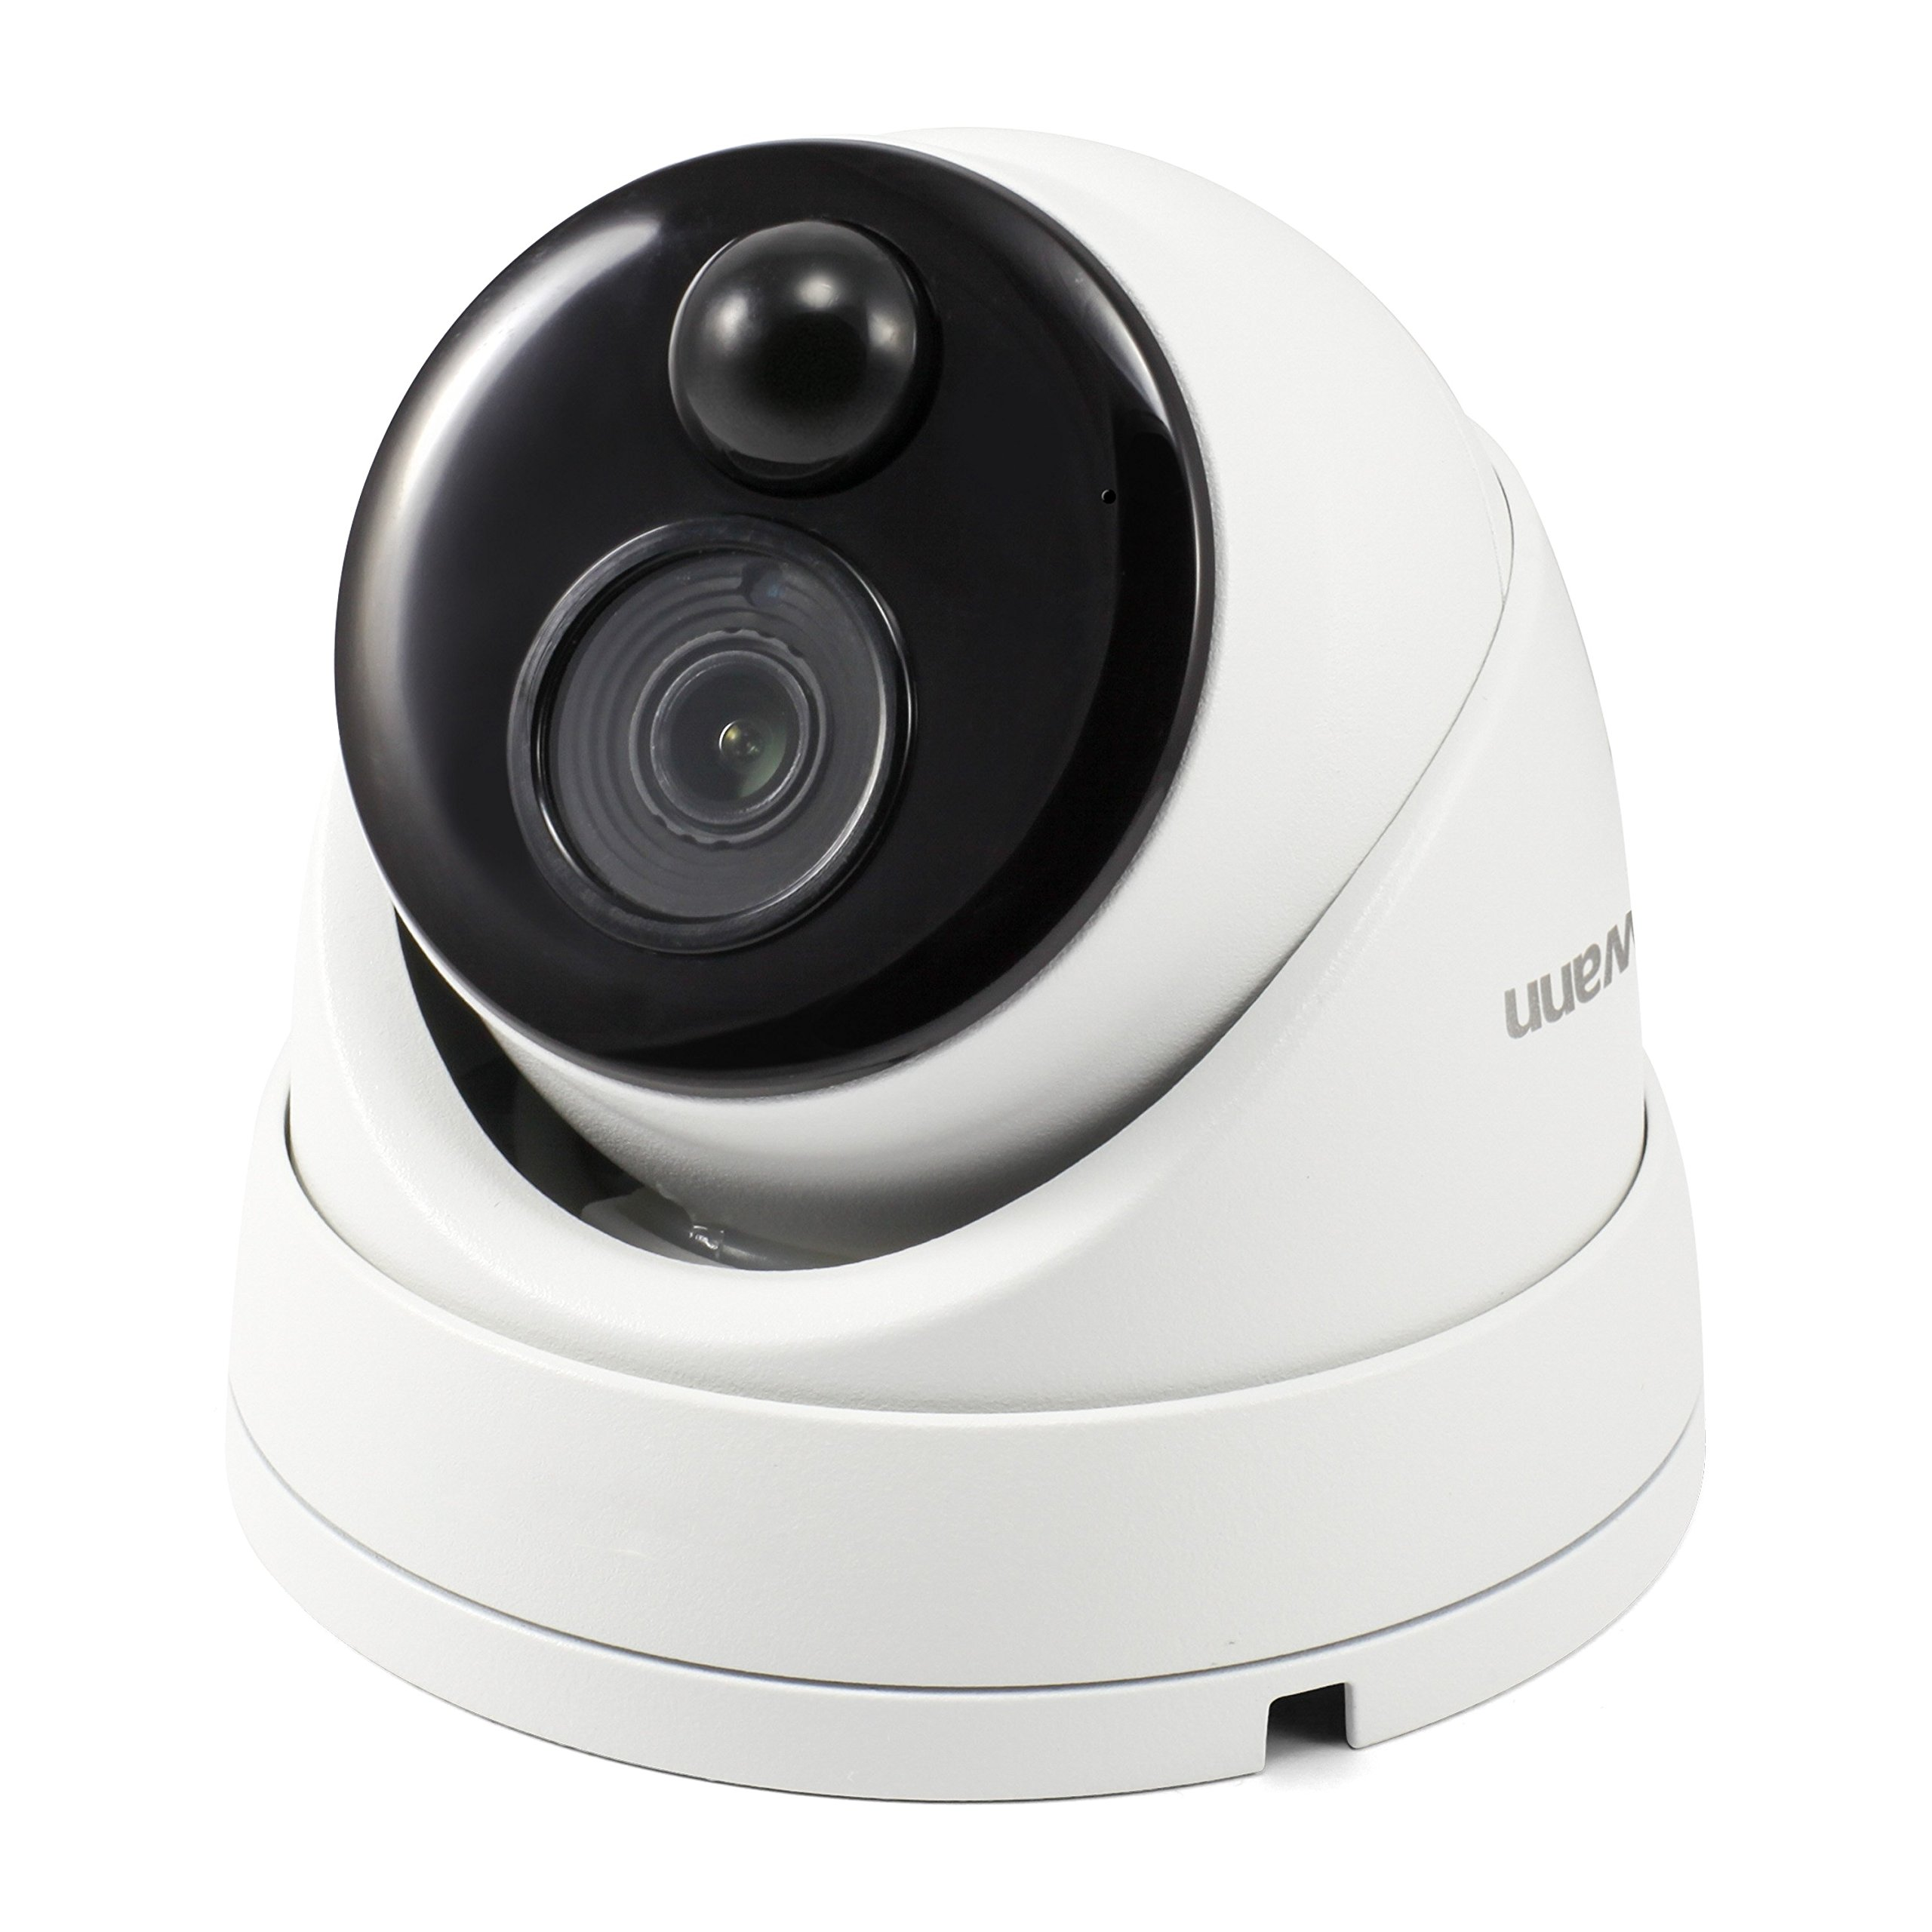 Swann 5MP Dome NVR Security Camera with Heat & Motion Sensing + Night Vision by Swann